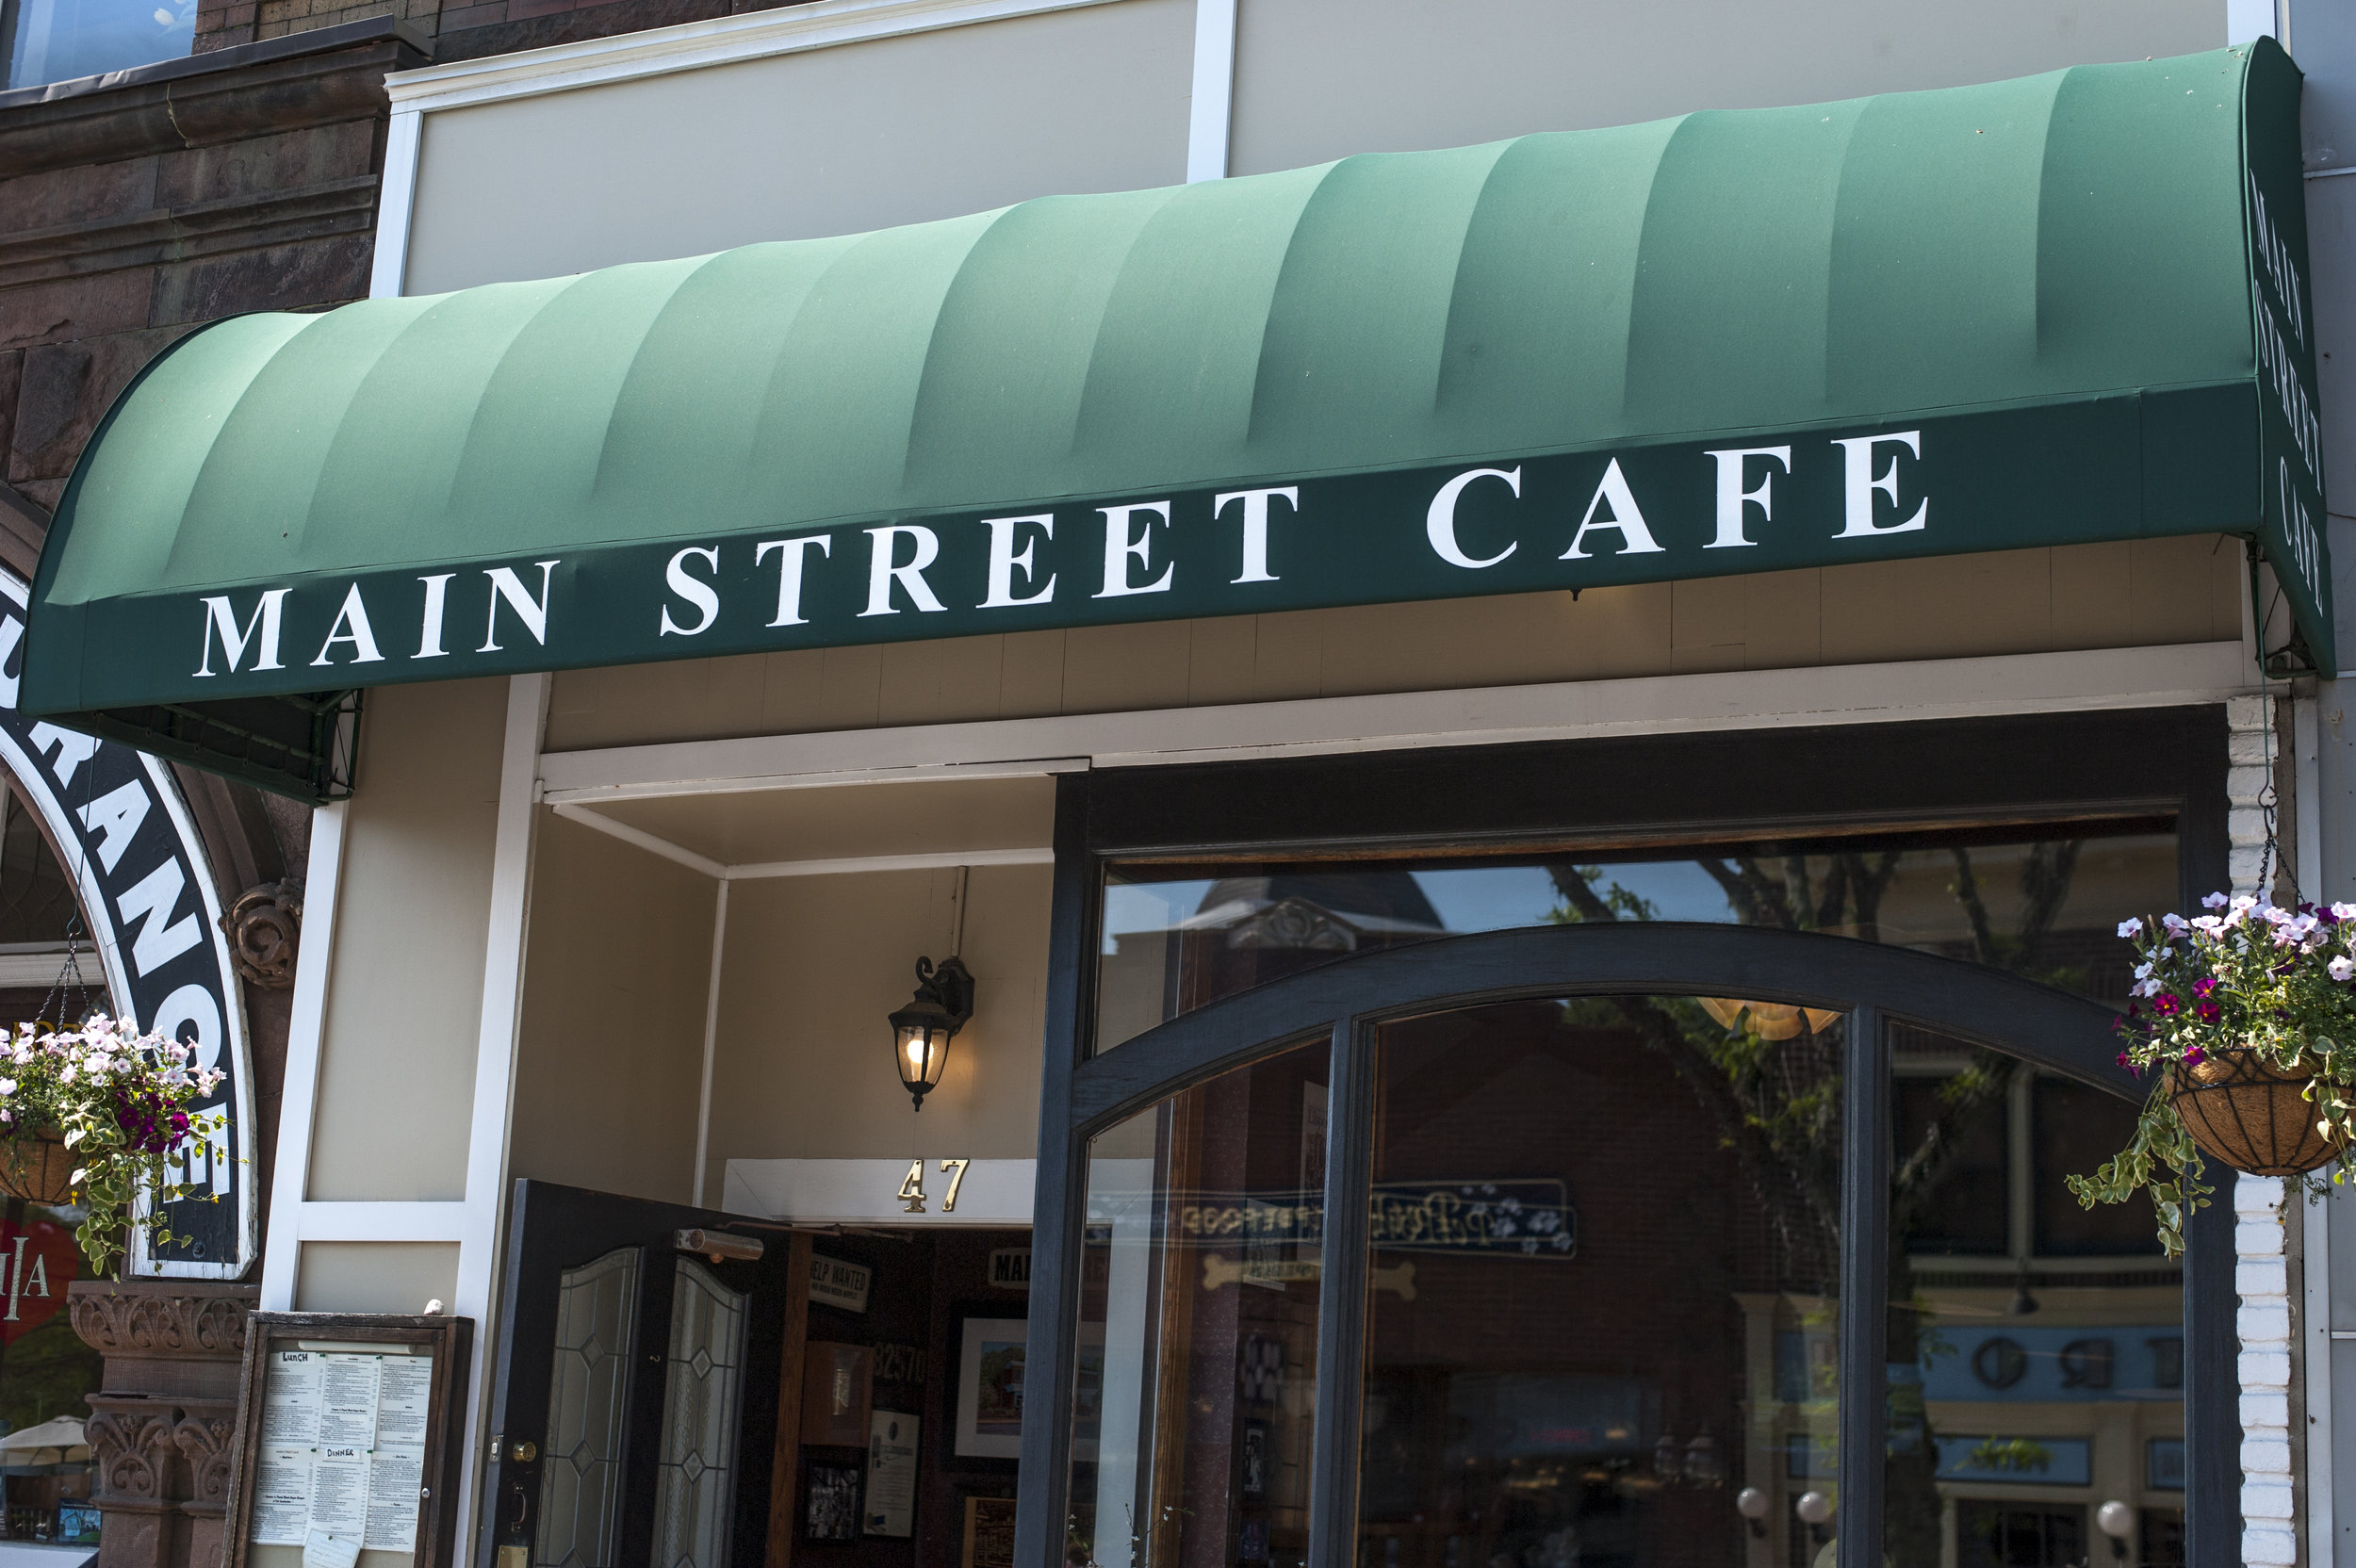 Long Islander News photos/David Weber  The Main Street Cafe has operated for more than three decades, serving up tasty treats and classic entrees at its 47 Main Street location.